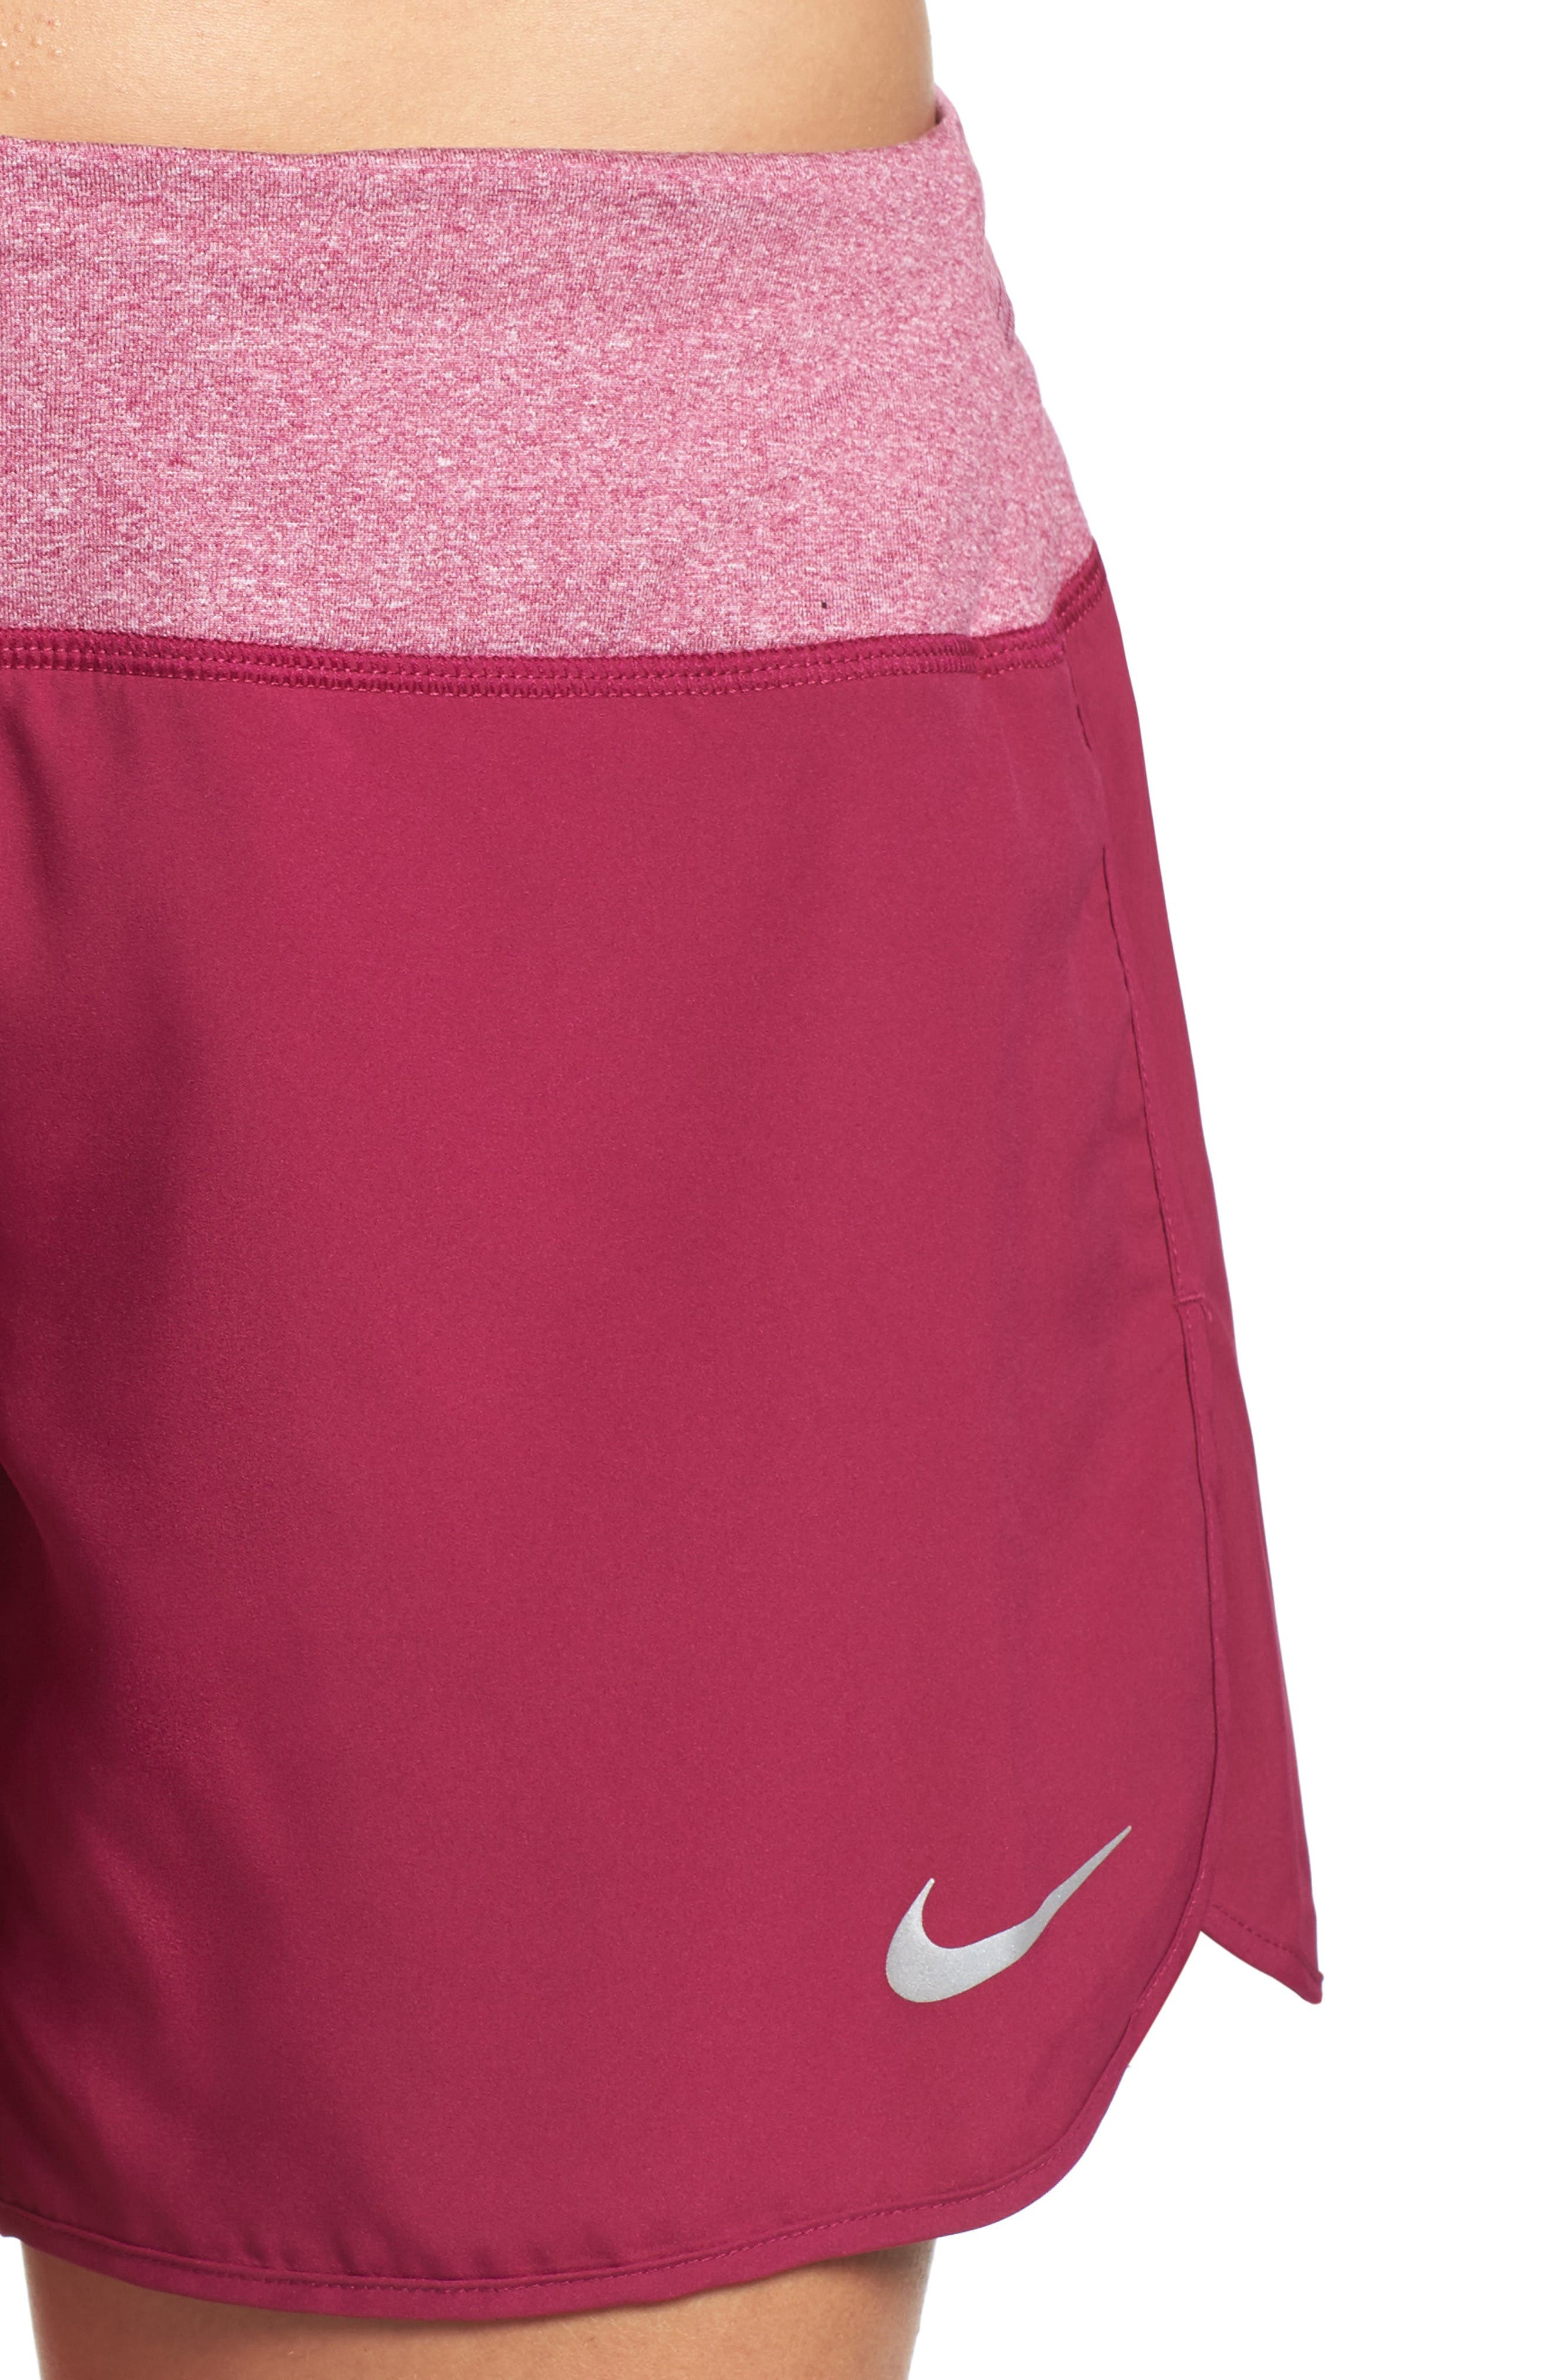 Flex Running Shorts,                             Alternate thumbnail 12, color,